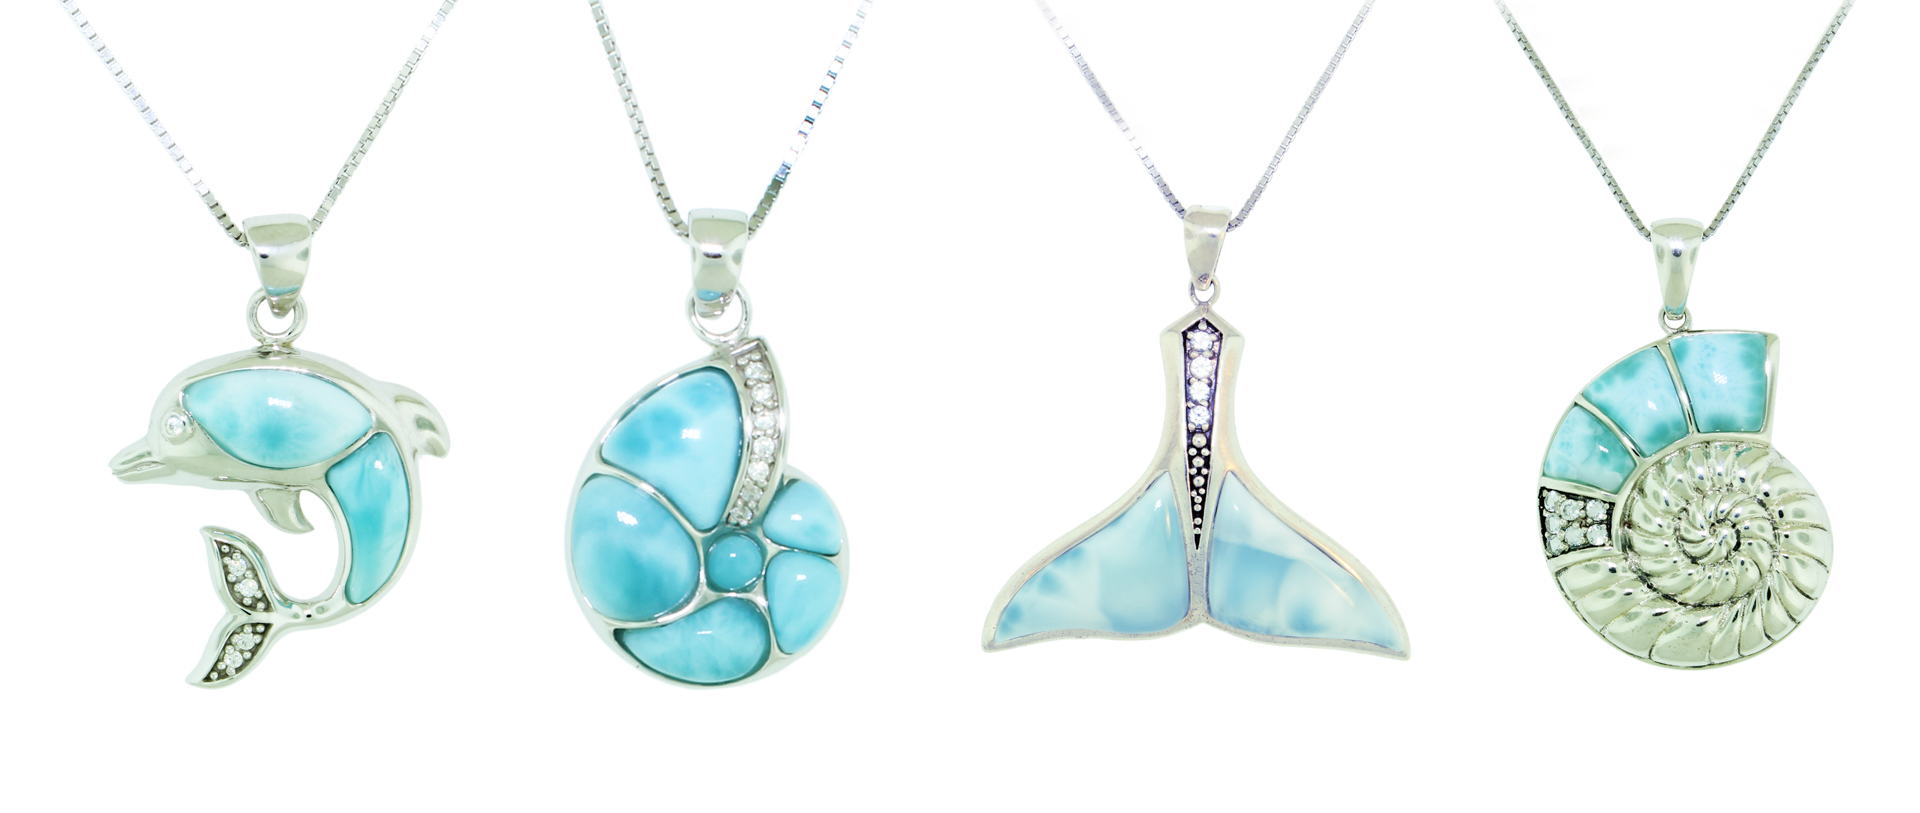 Larimar Jewelry By Melymar Larimar Jewelry Inspired By